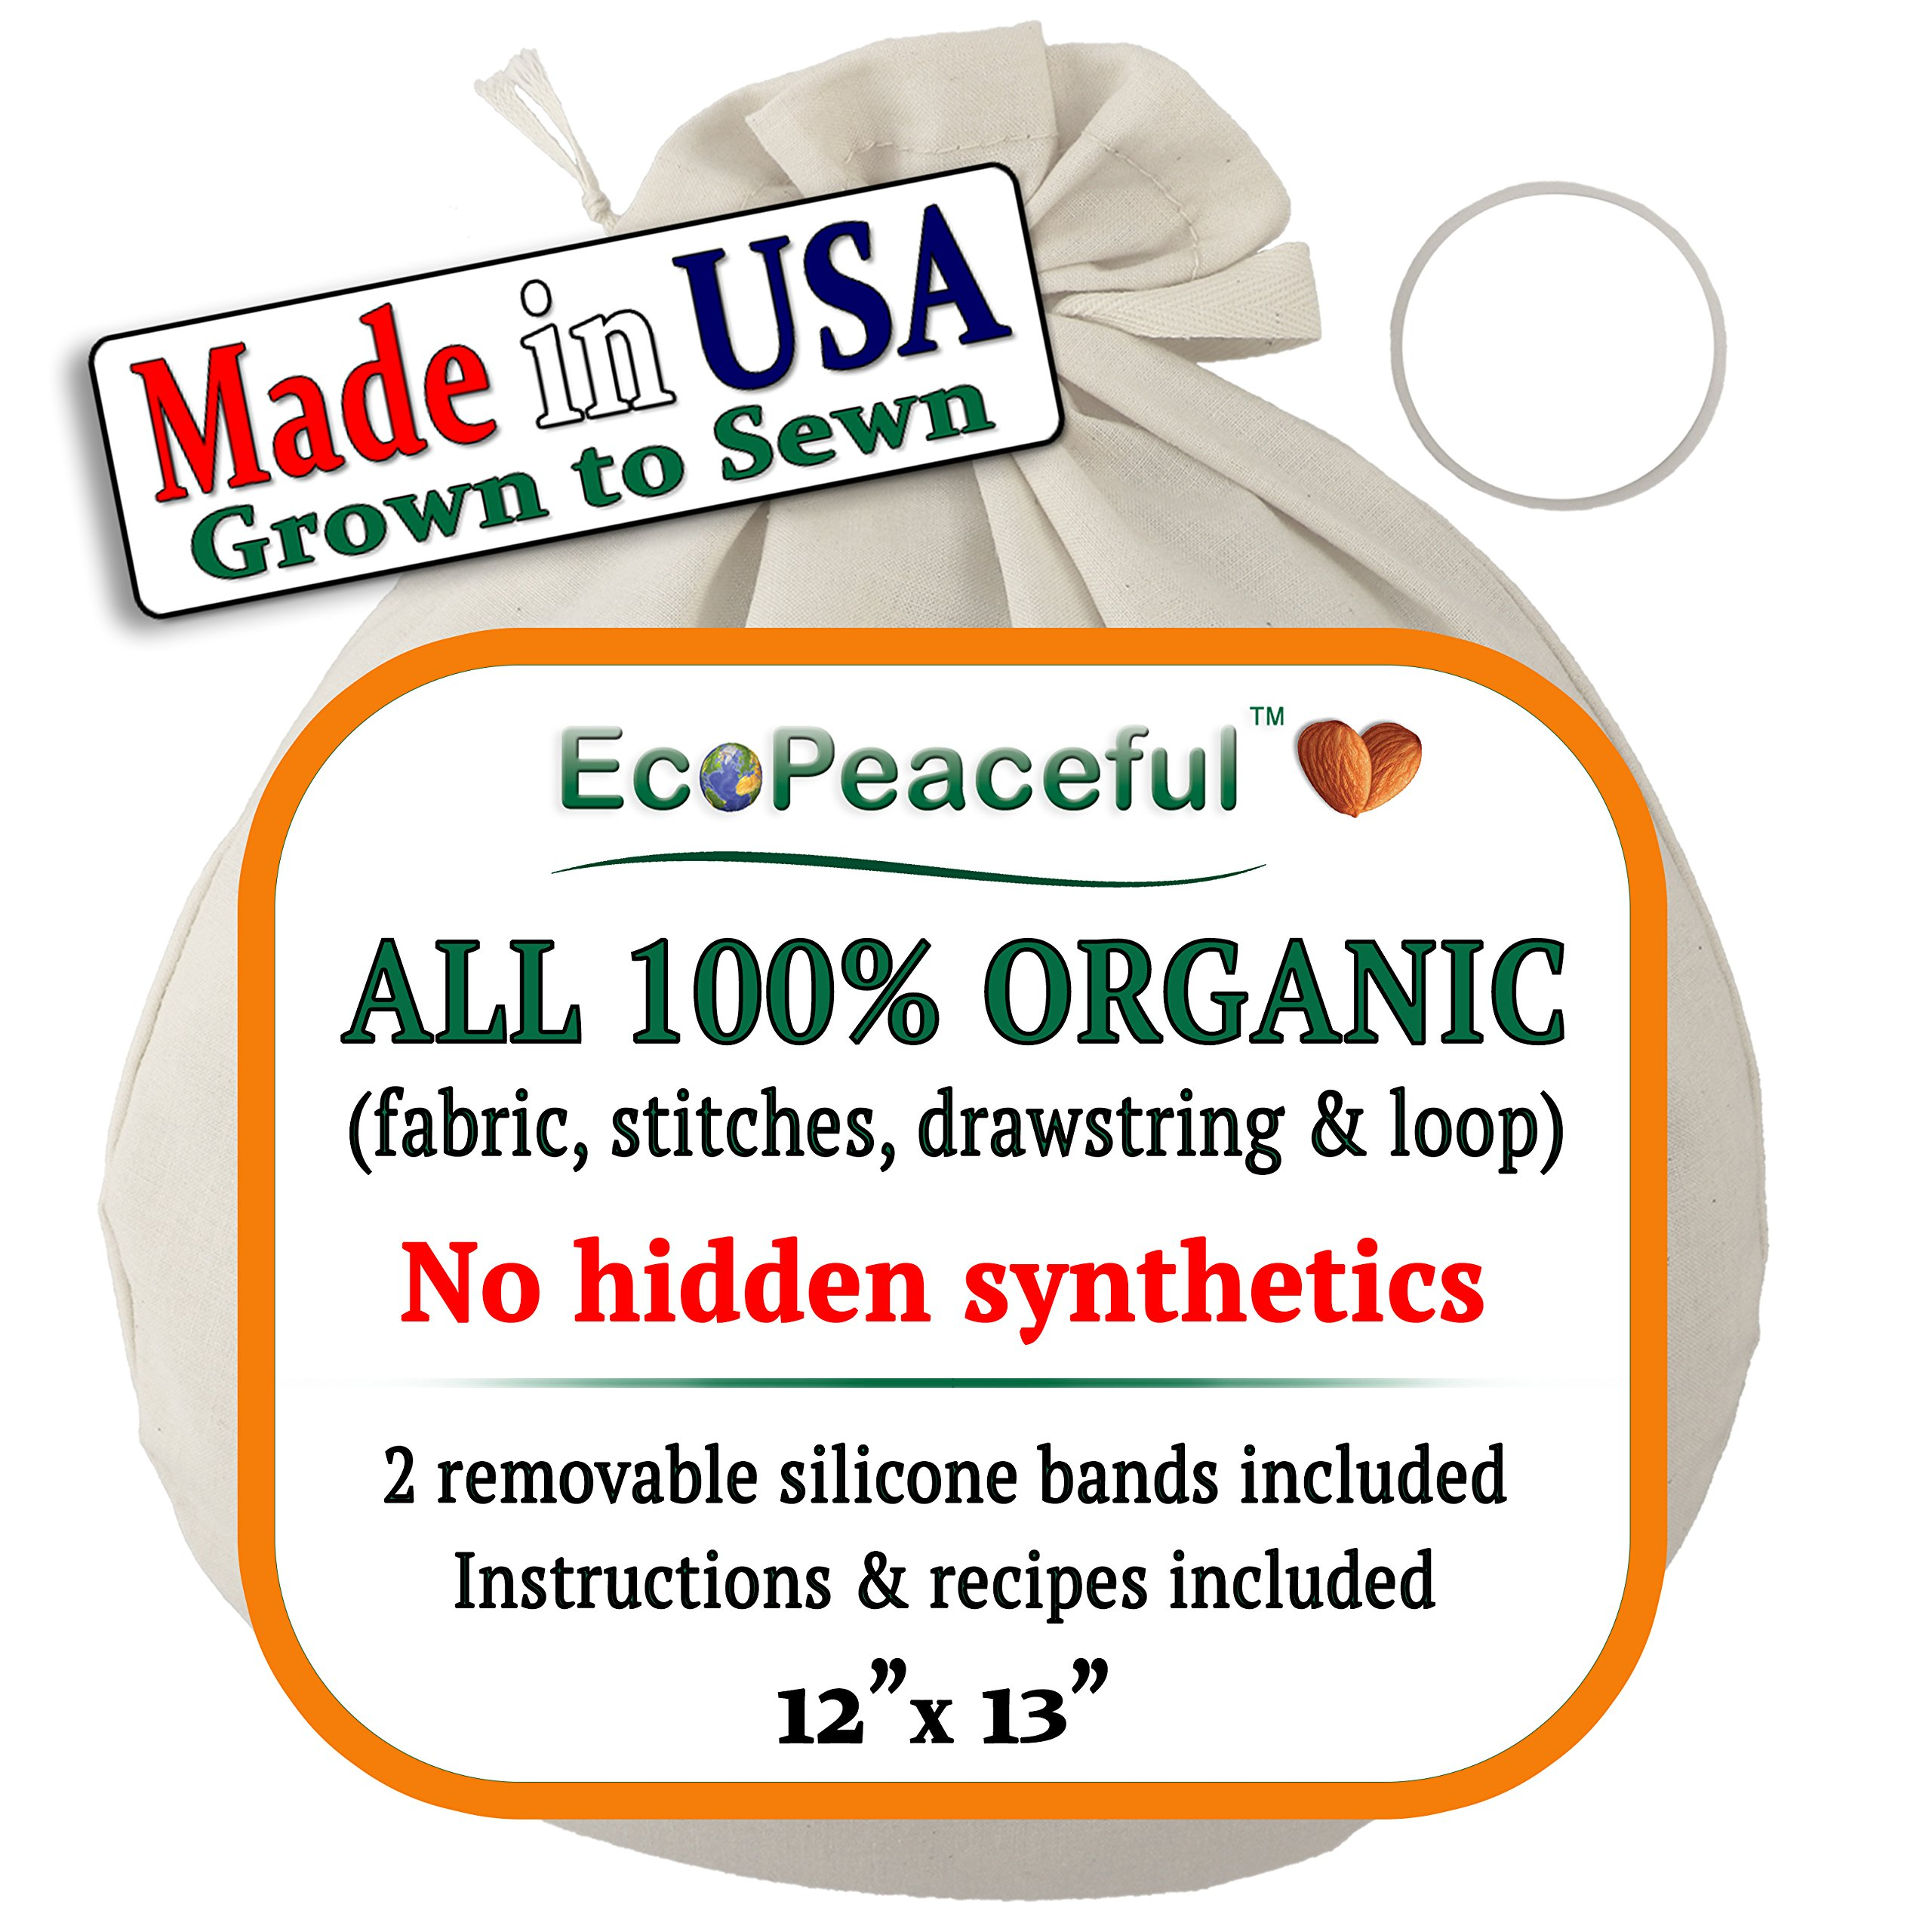 EcoPeaceful Nut Milk Bag - ALL 100% Organic Cotton, Undyed, Unbleached. Filter, Strainer or Produce Drawstring Bag w/2 Silicone Bands For Easy & Tight Closing. DAIRY-FREE Recipes, Videos & Support